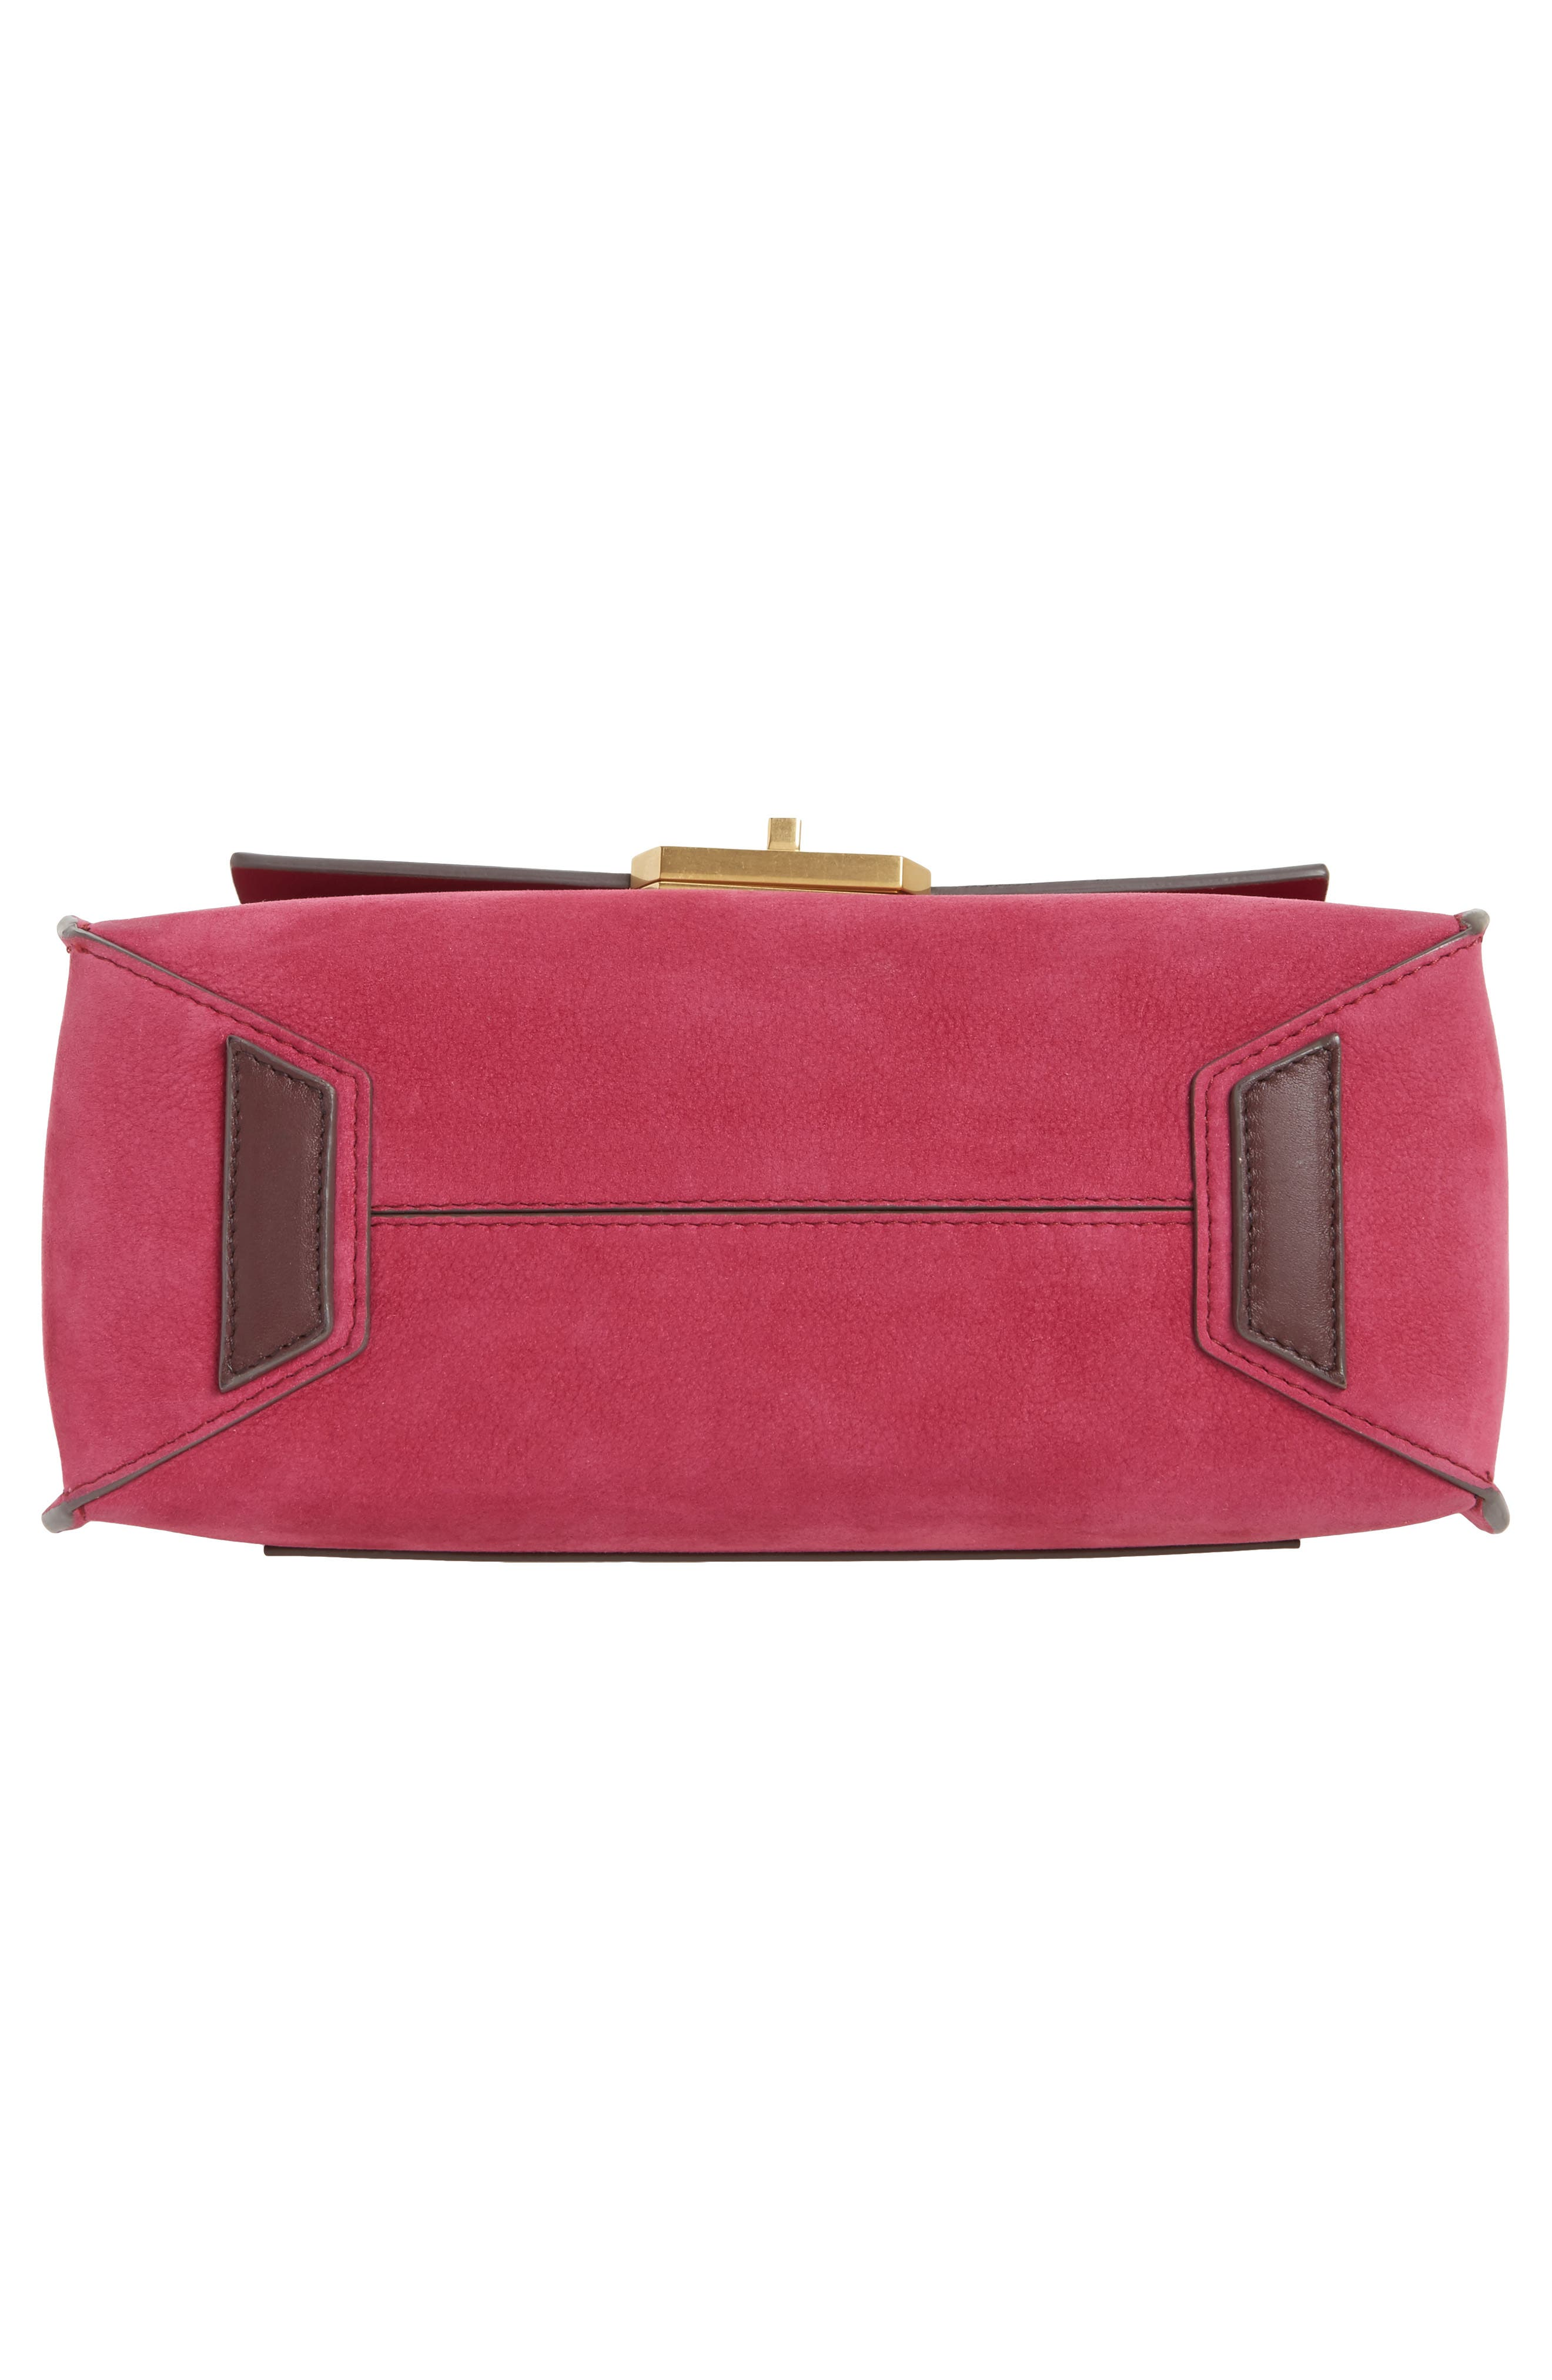 Extra Small Bathhurst Heart Leather Shoulder Bag,                             Alternate thumbnail 6, color,                             Raspberry